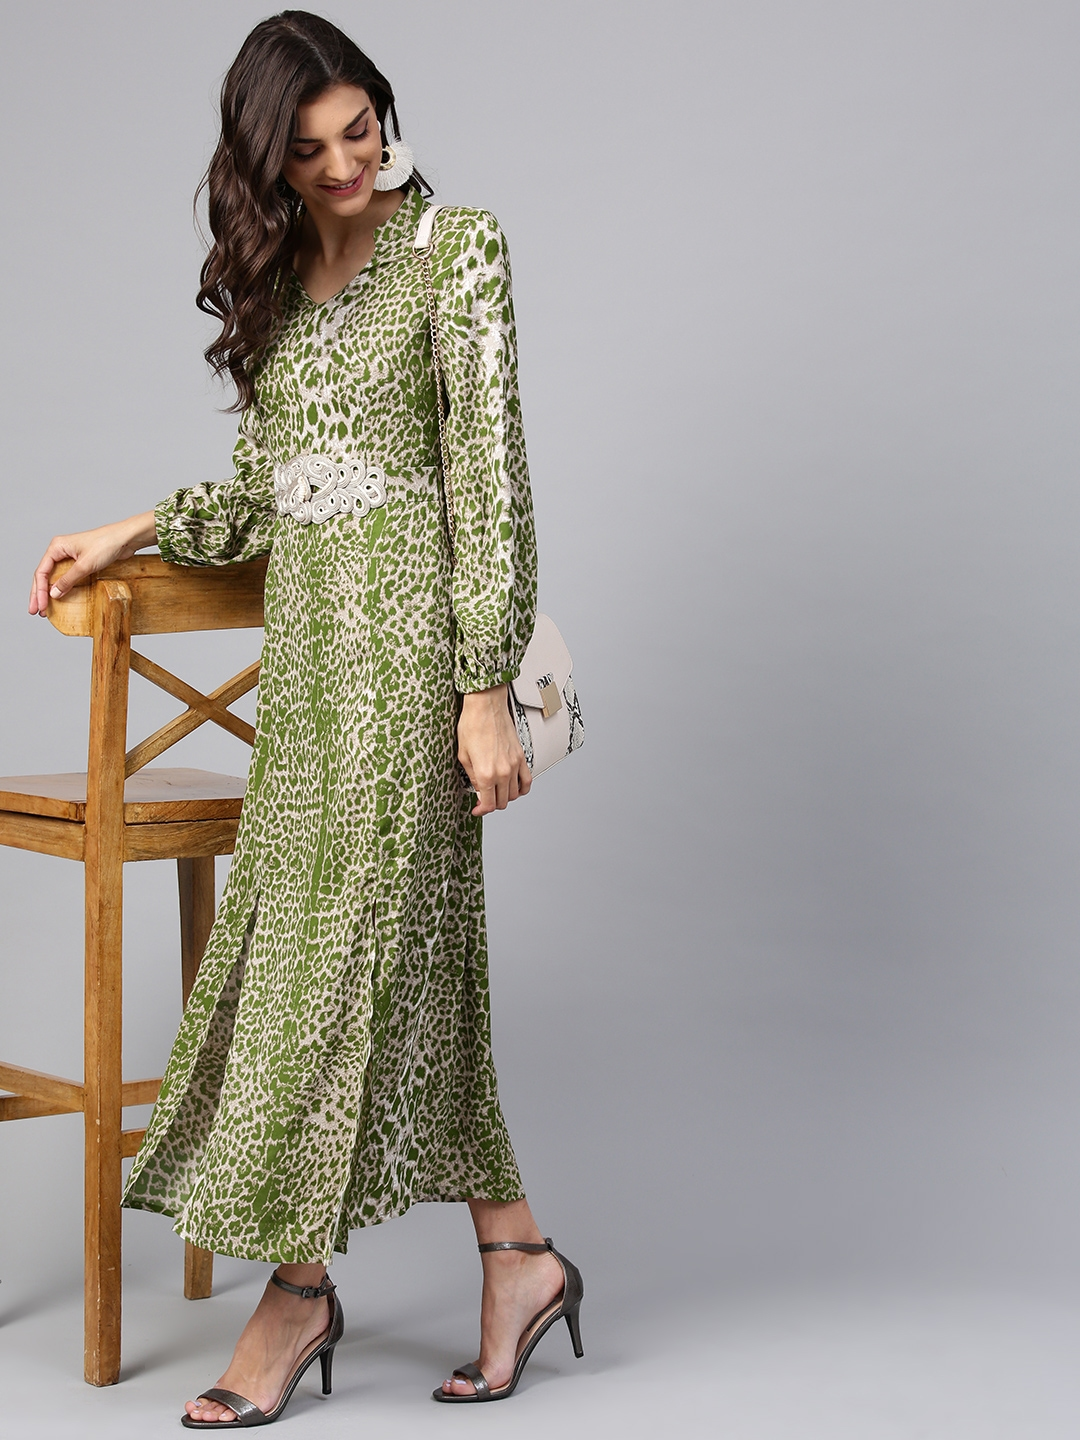 286a979fc3f9 Buy Zima Leto Women Beige   Green Animal Print Maxi Dress - Dresses ...